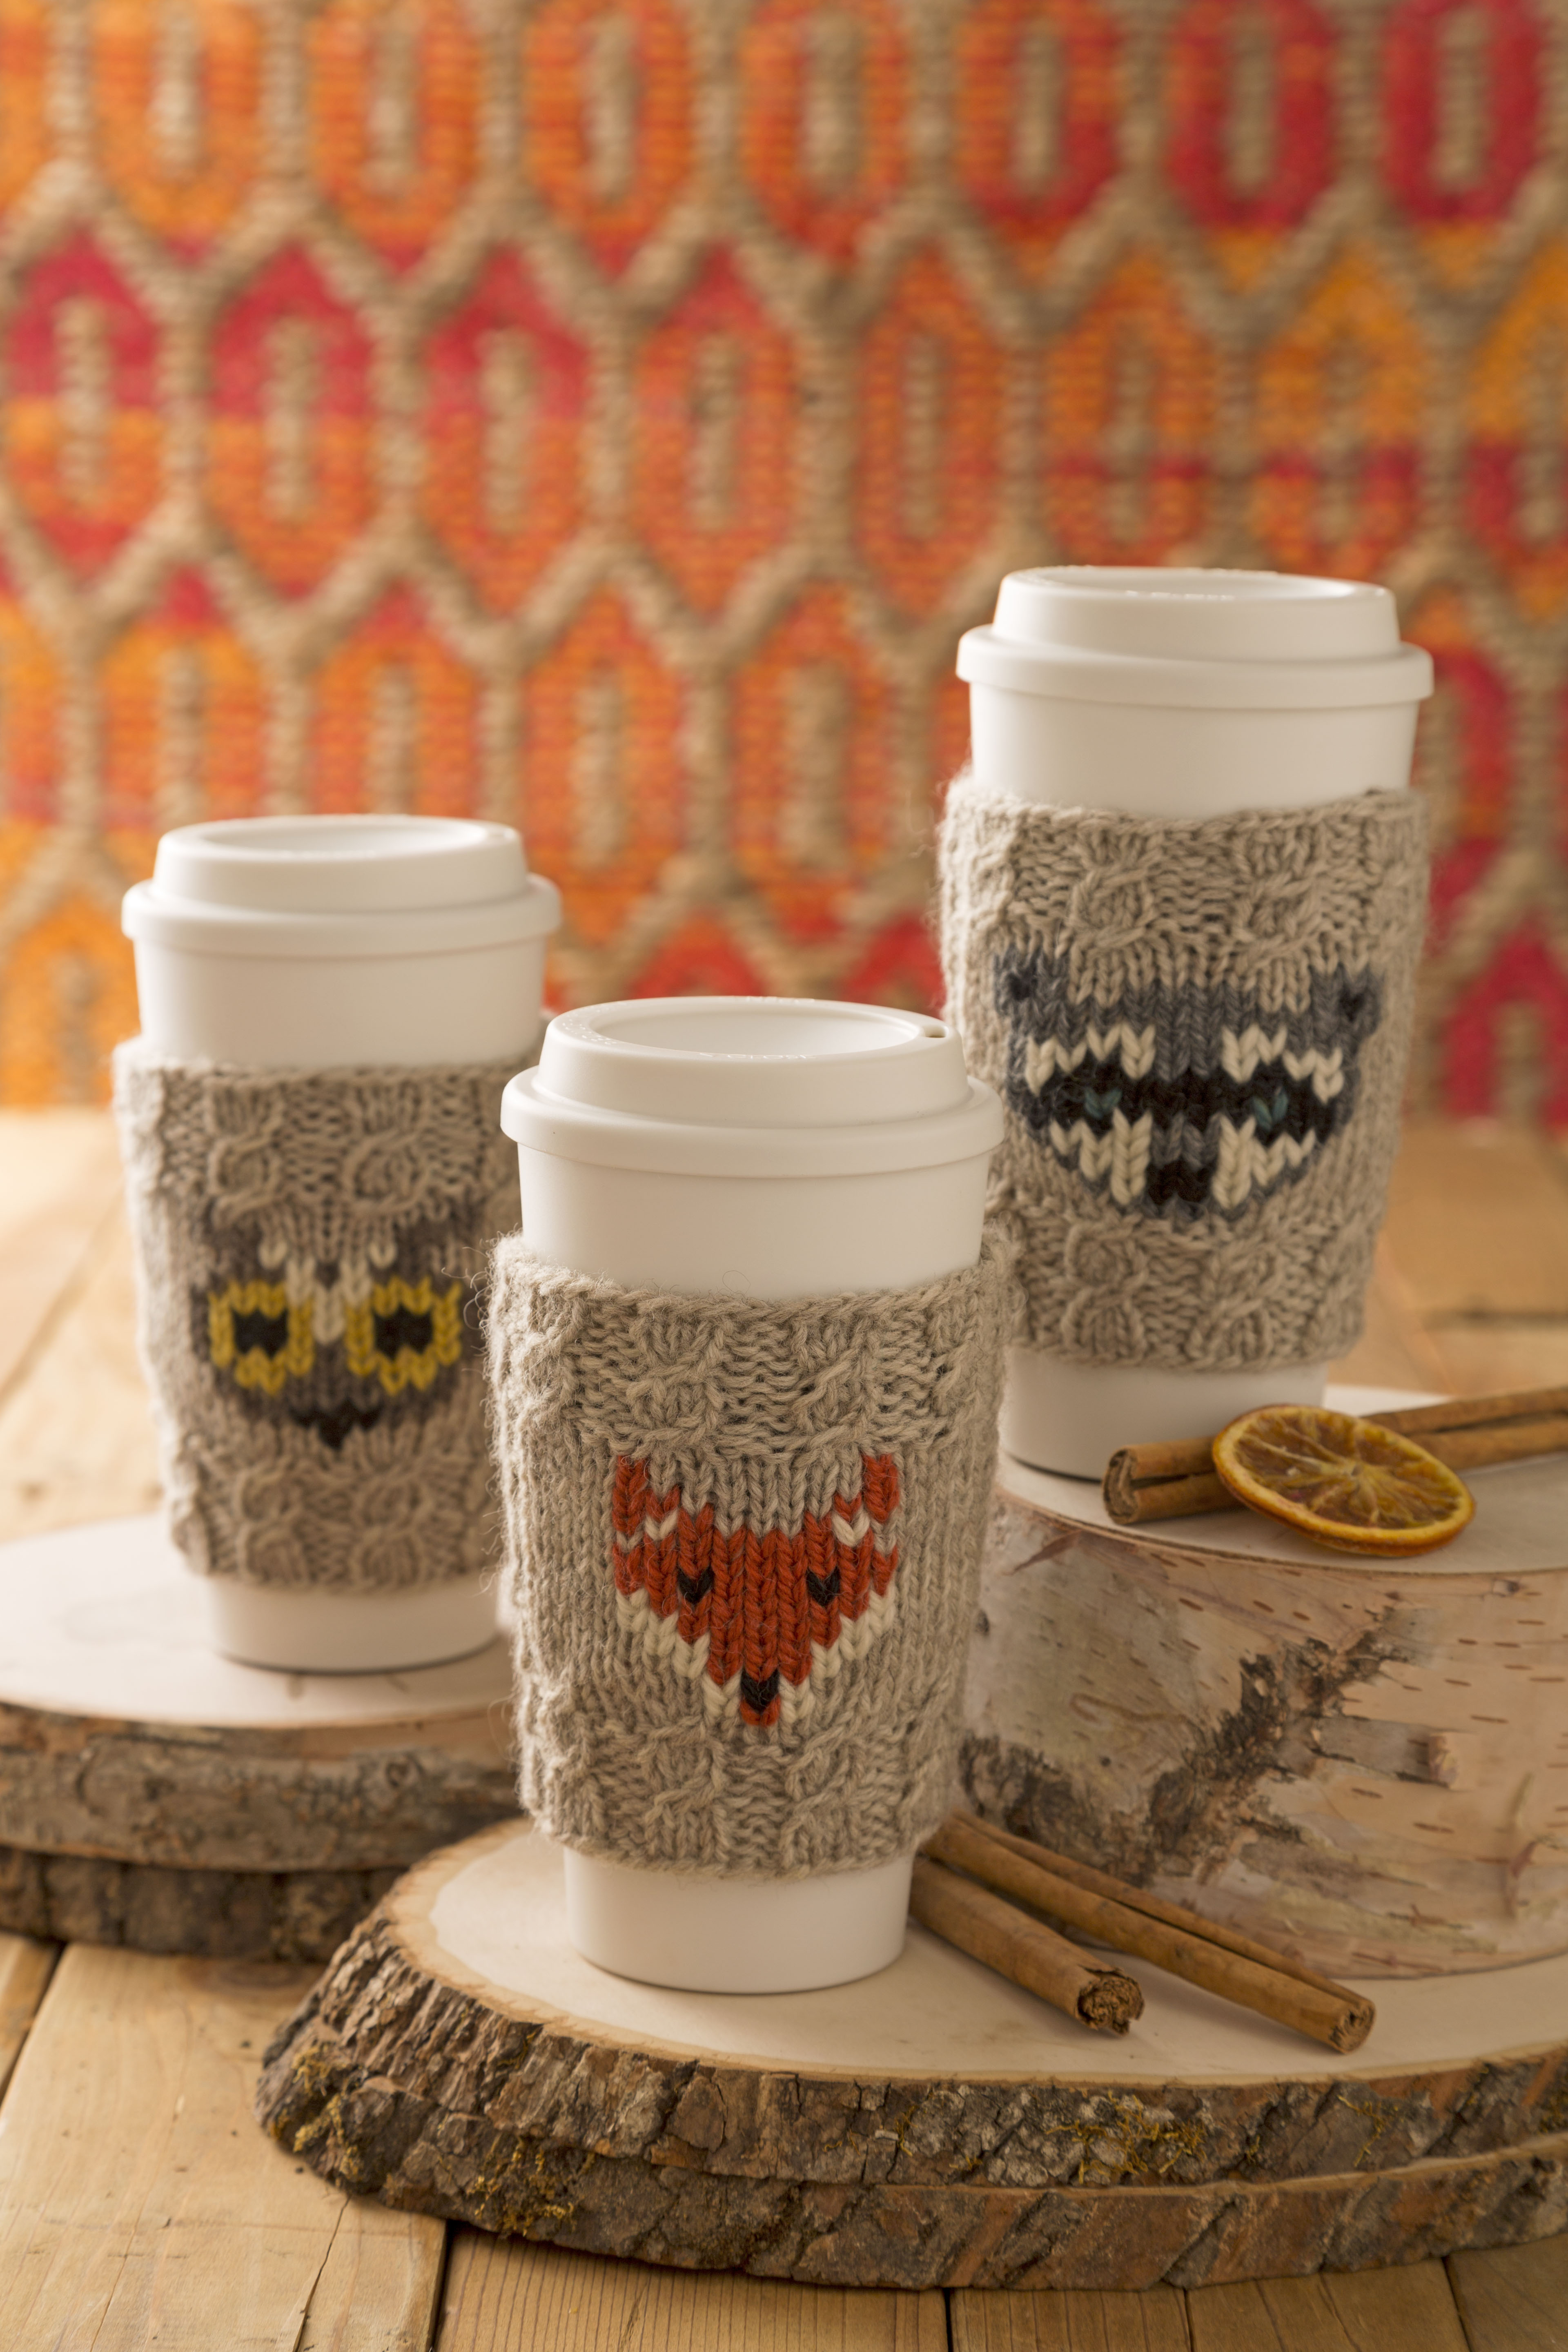 Free knitting pattern for Forest Folk Cup Cozies and more wild animal knitting patterns